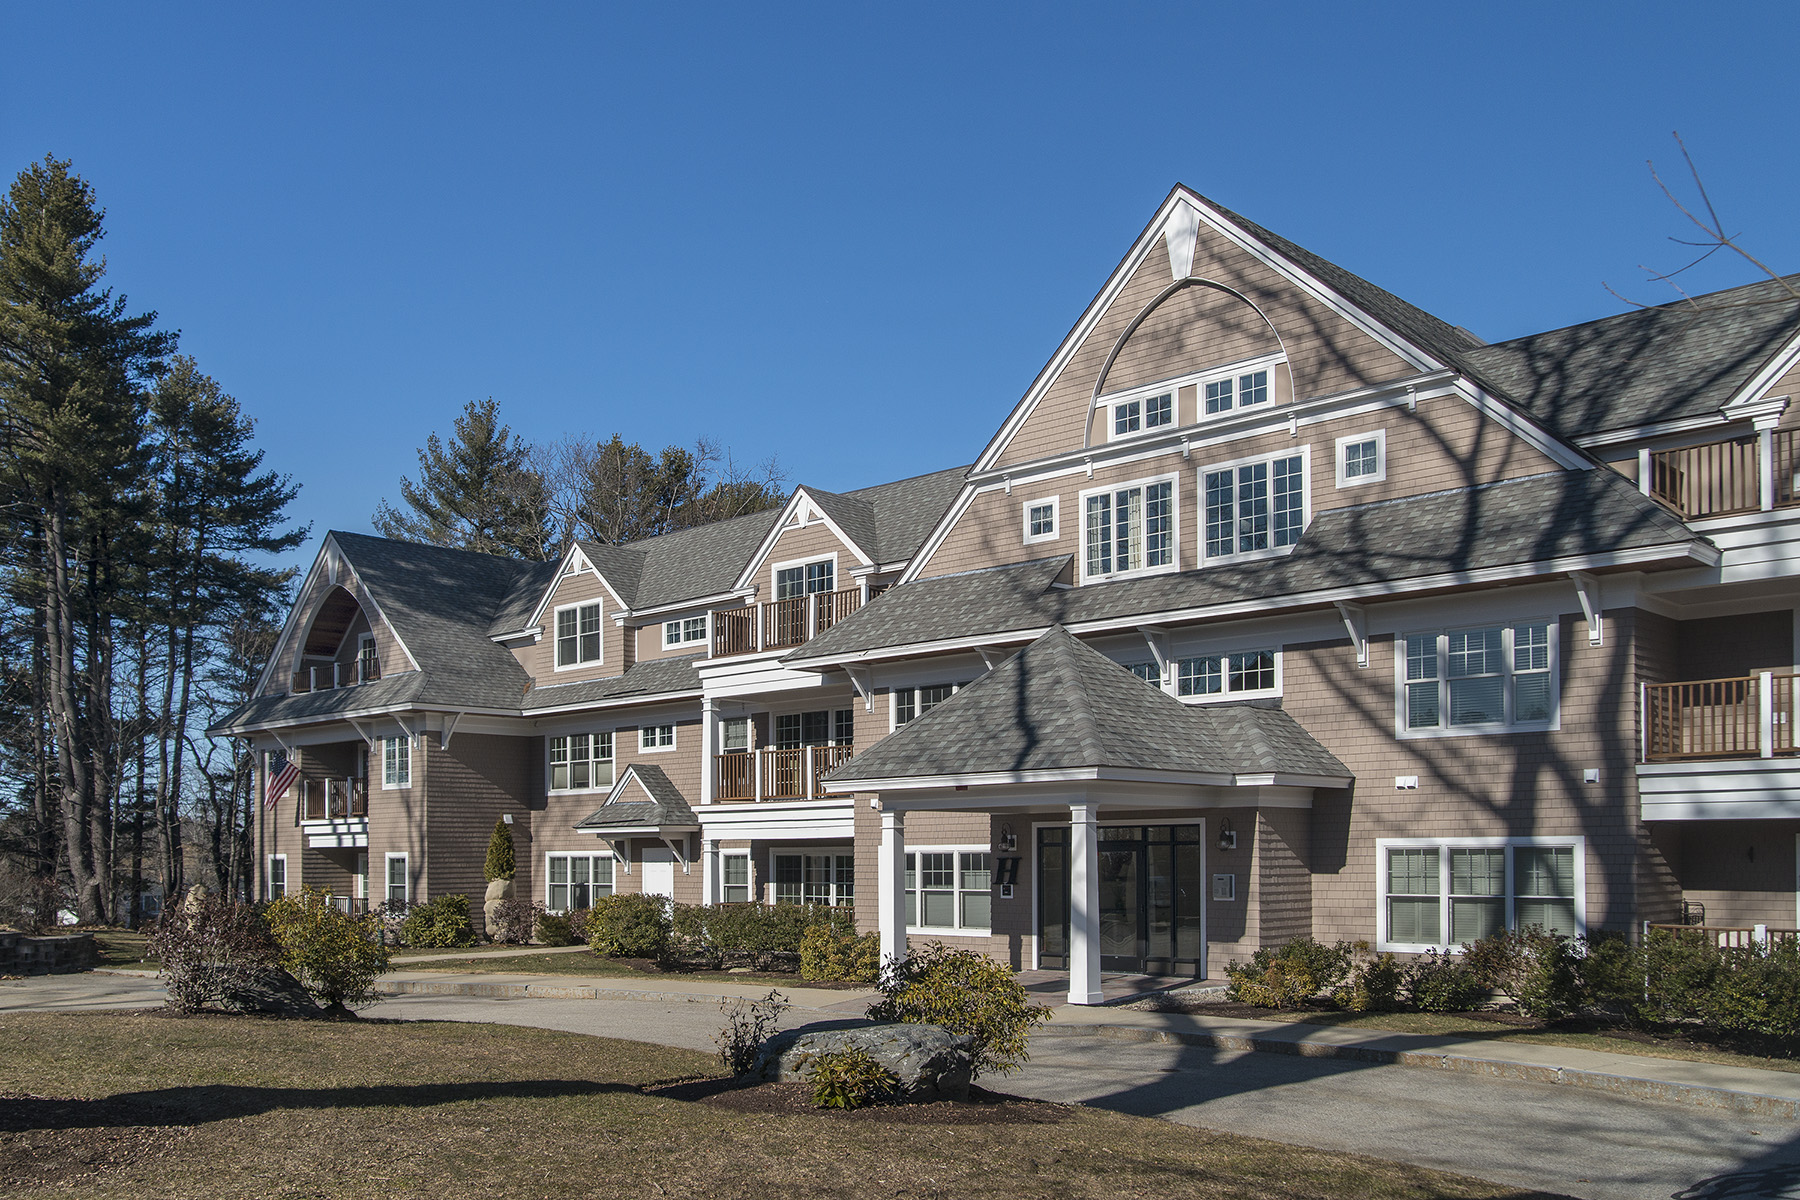 Condominium for Sale at Shepard's Cove 100 Shepard's Cove Road Kittery, Maine, 03904 United States